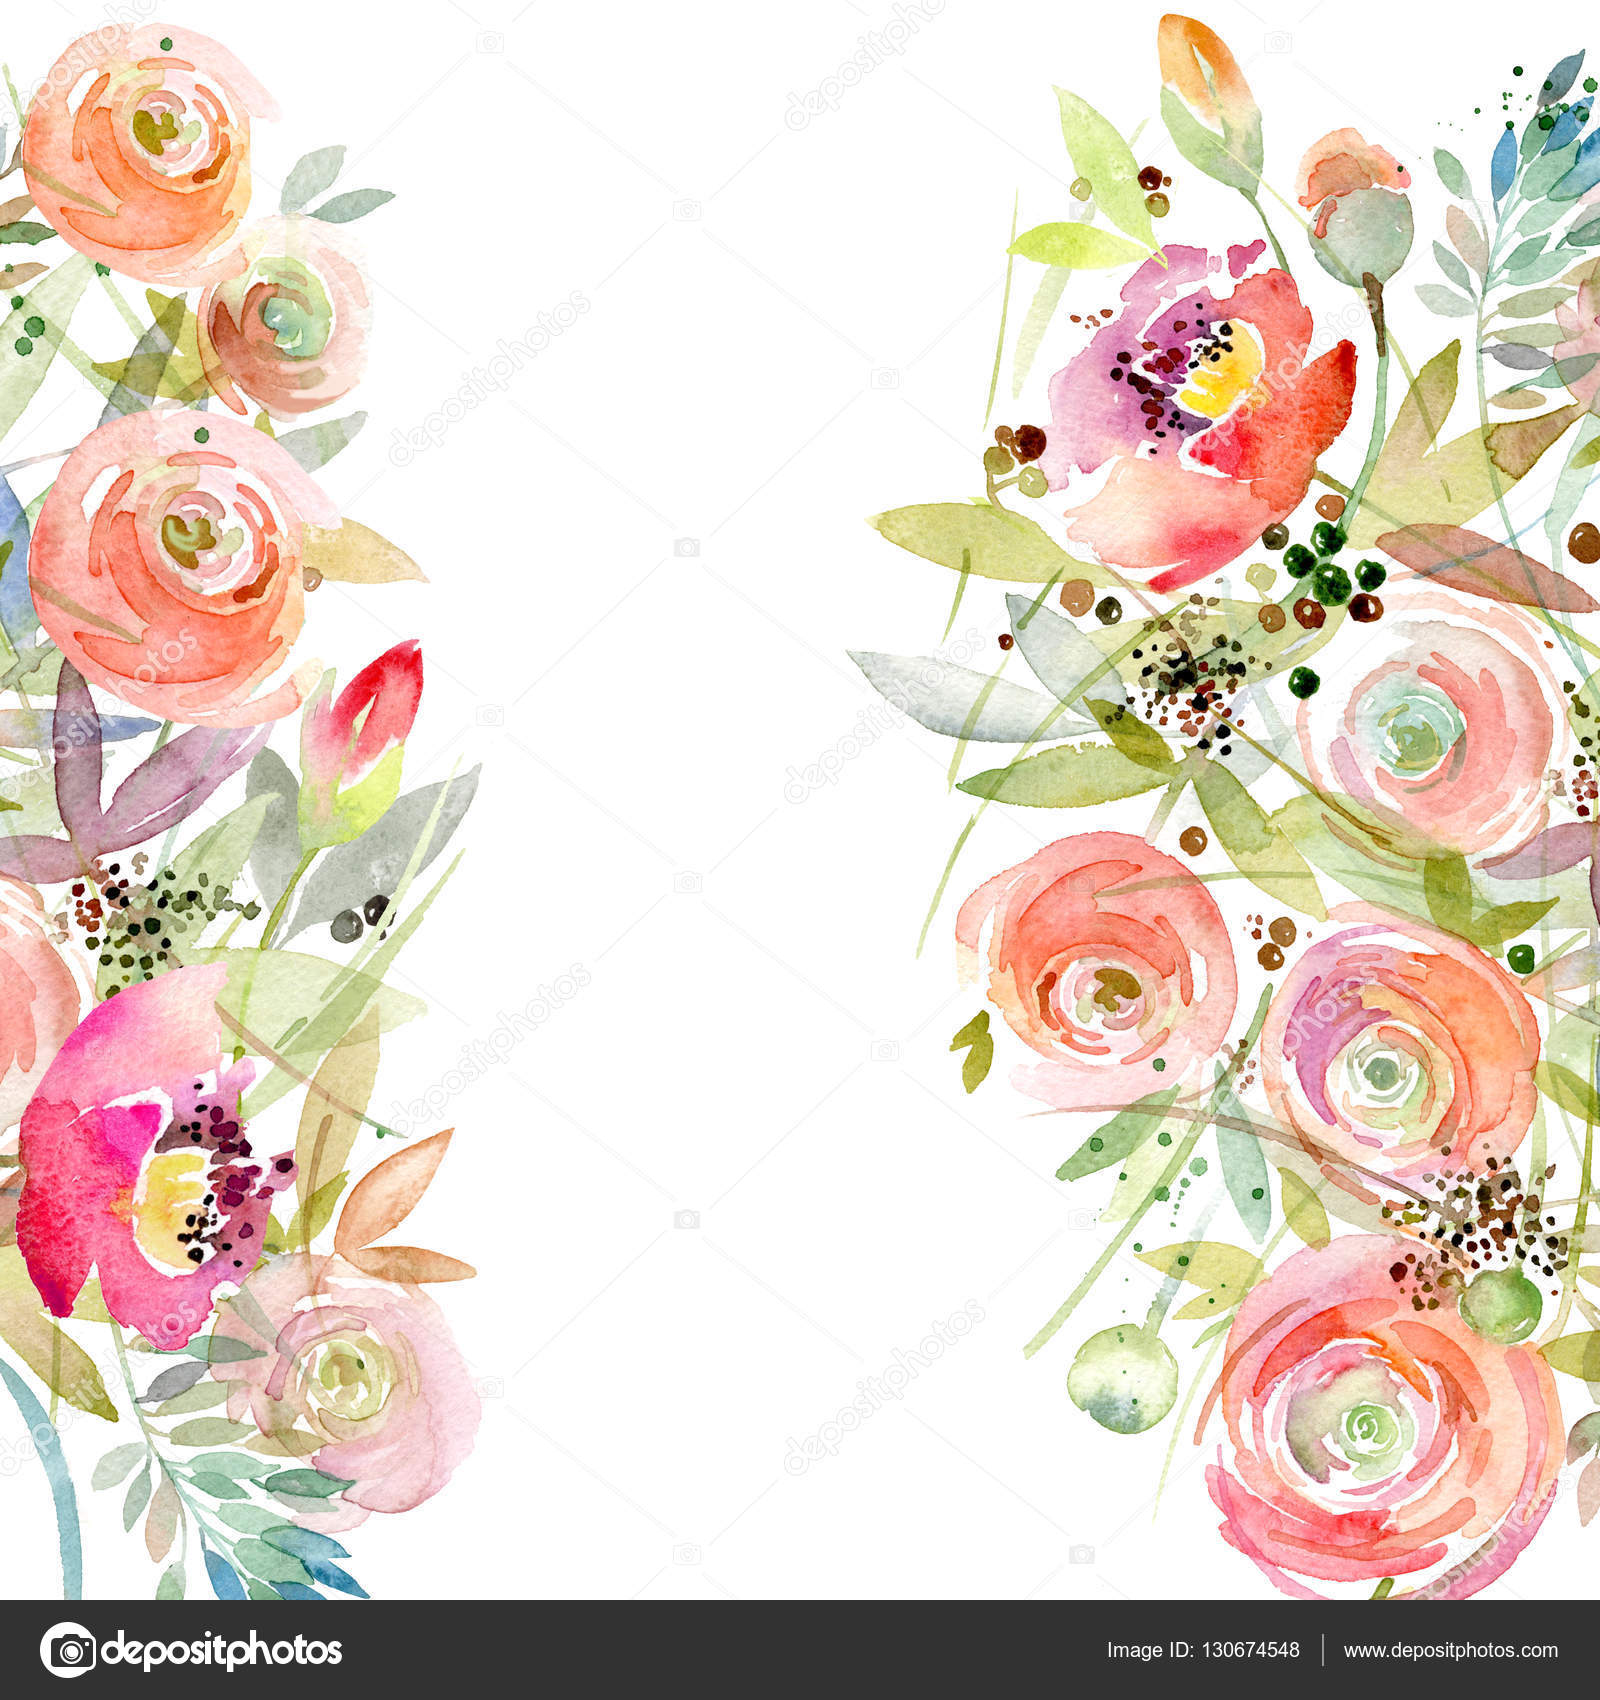 Vintage Flower clipart background Flower greeting Photo card Watercolor